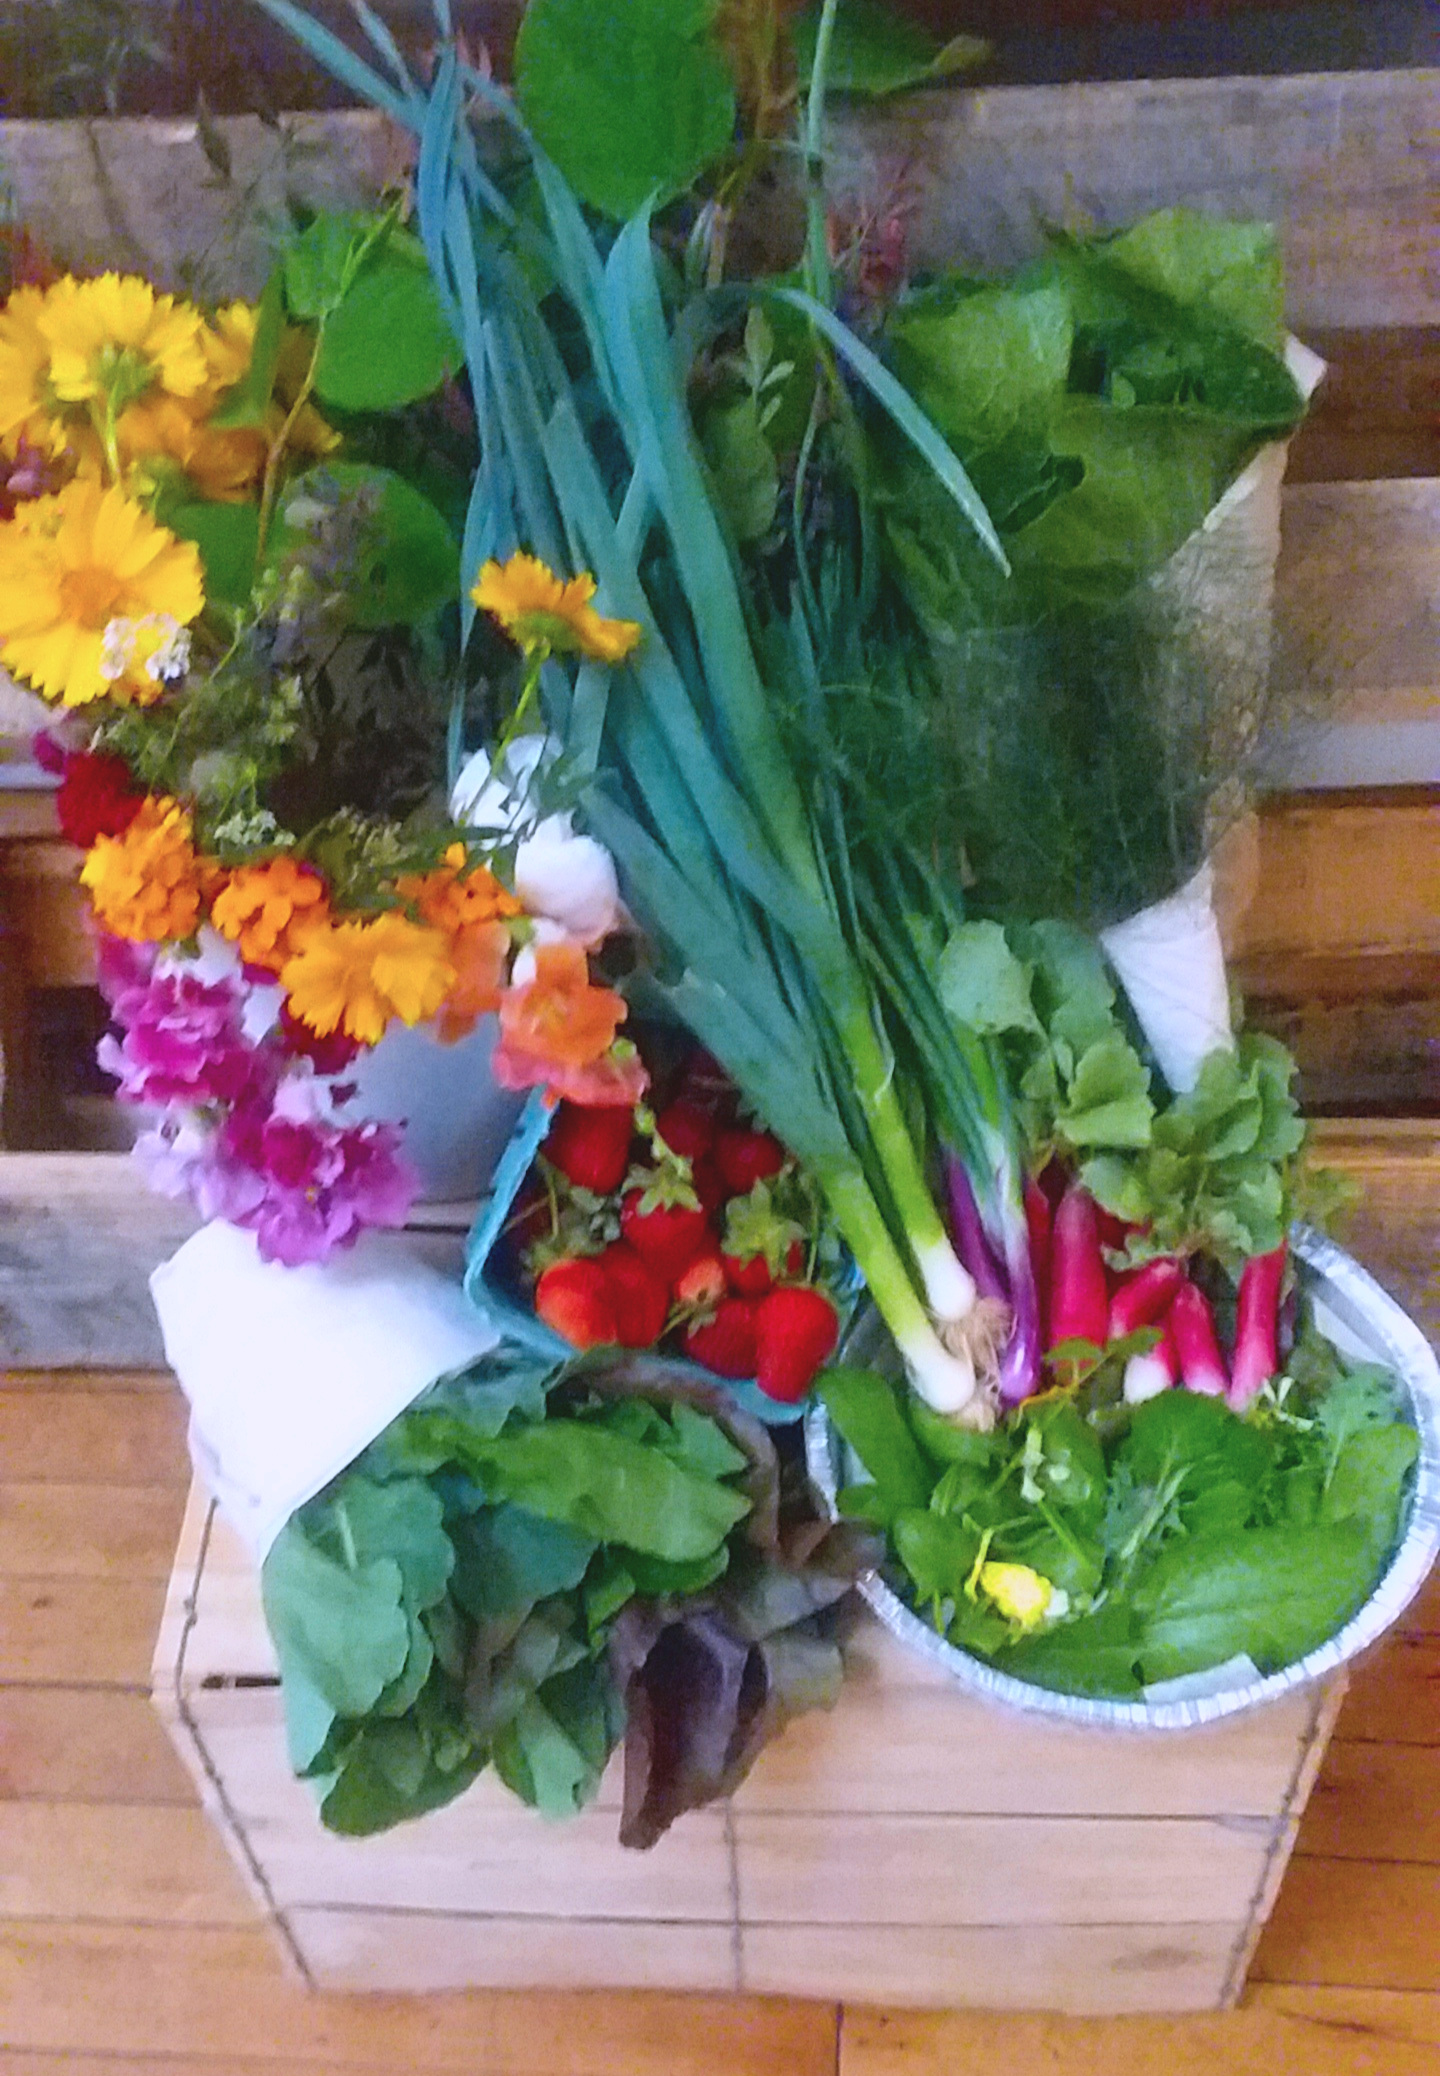 This week we have Flowers, Leeks, Bok Choi,Bronze Fennel, French and Easter Radishes, Baby Salad Mix, the best Strawberries we have ever eaten, and Mixed Greens ~Collard, Beet, Sorrel, Cabbage, and Dandelion Greens~ Enjoy! -